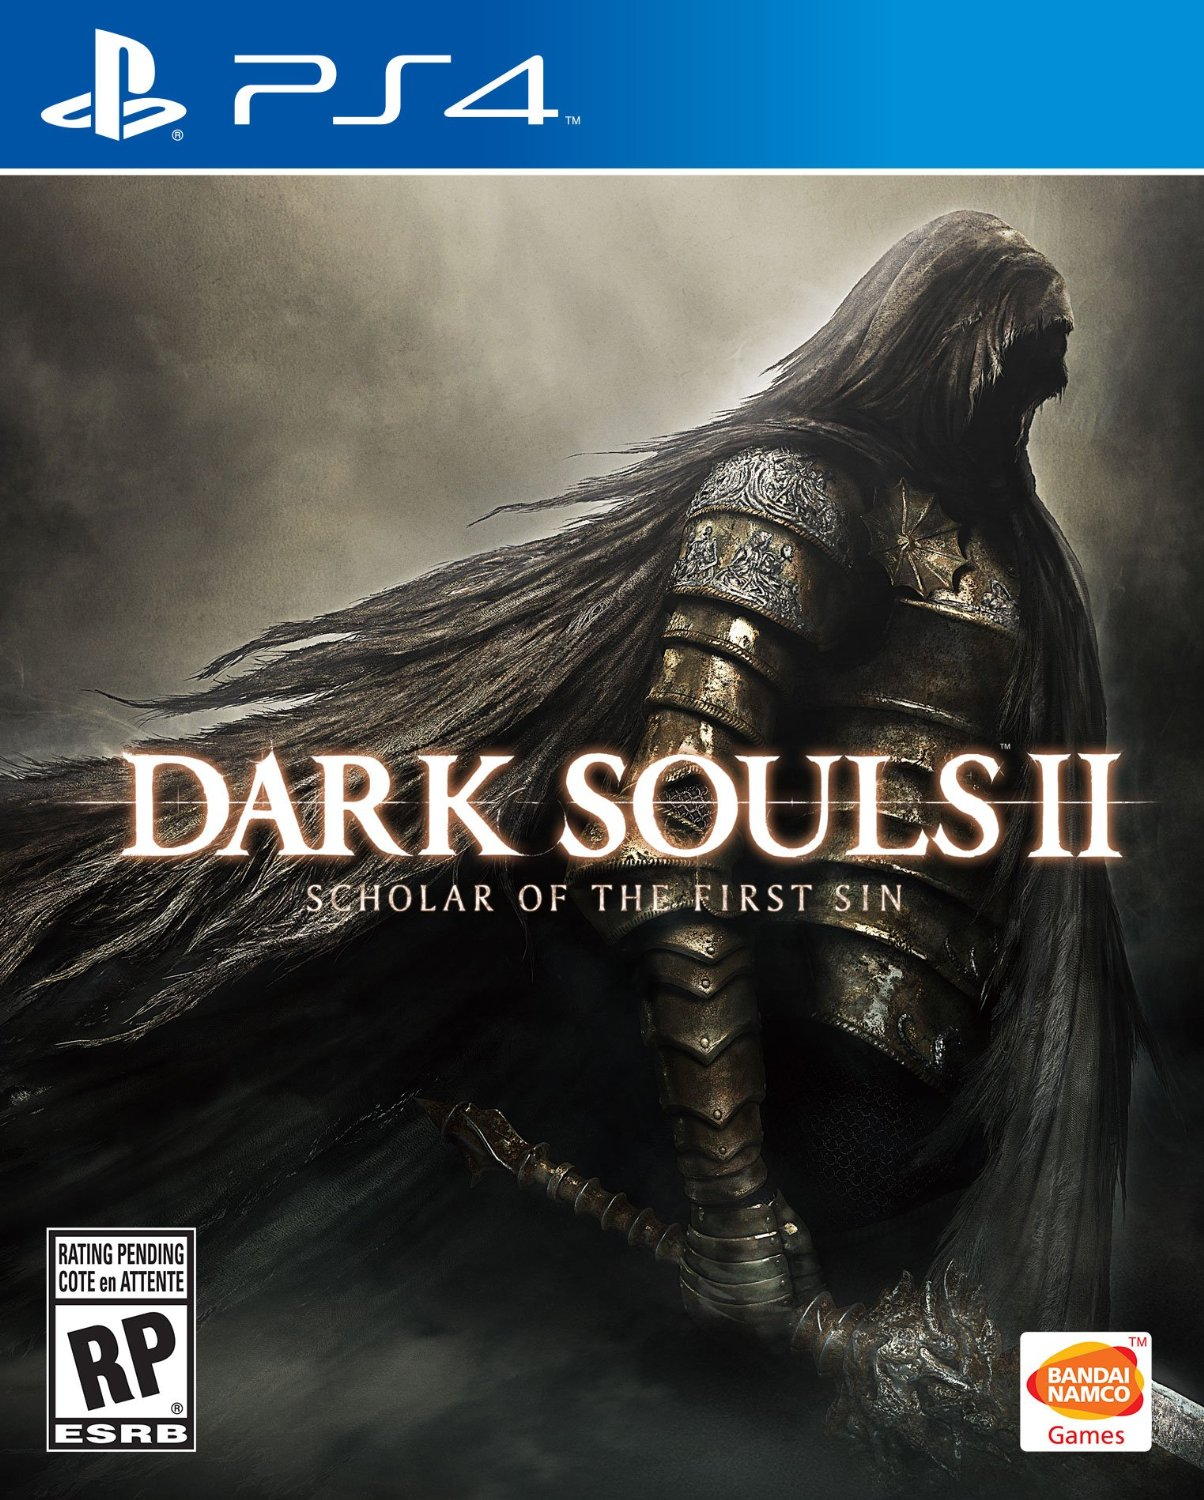 PS4 Dark Souls II: Scholar of the First Sin em Português